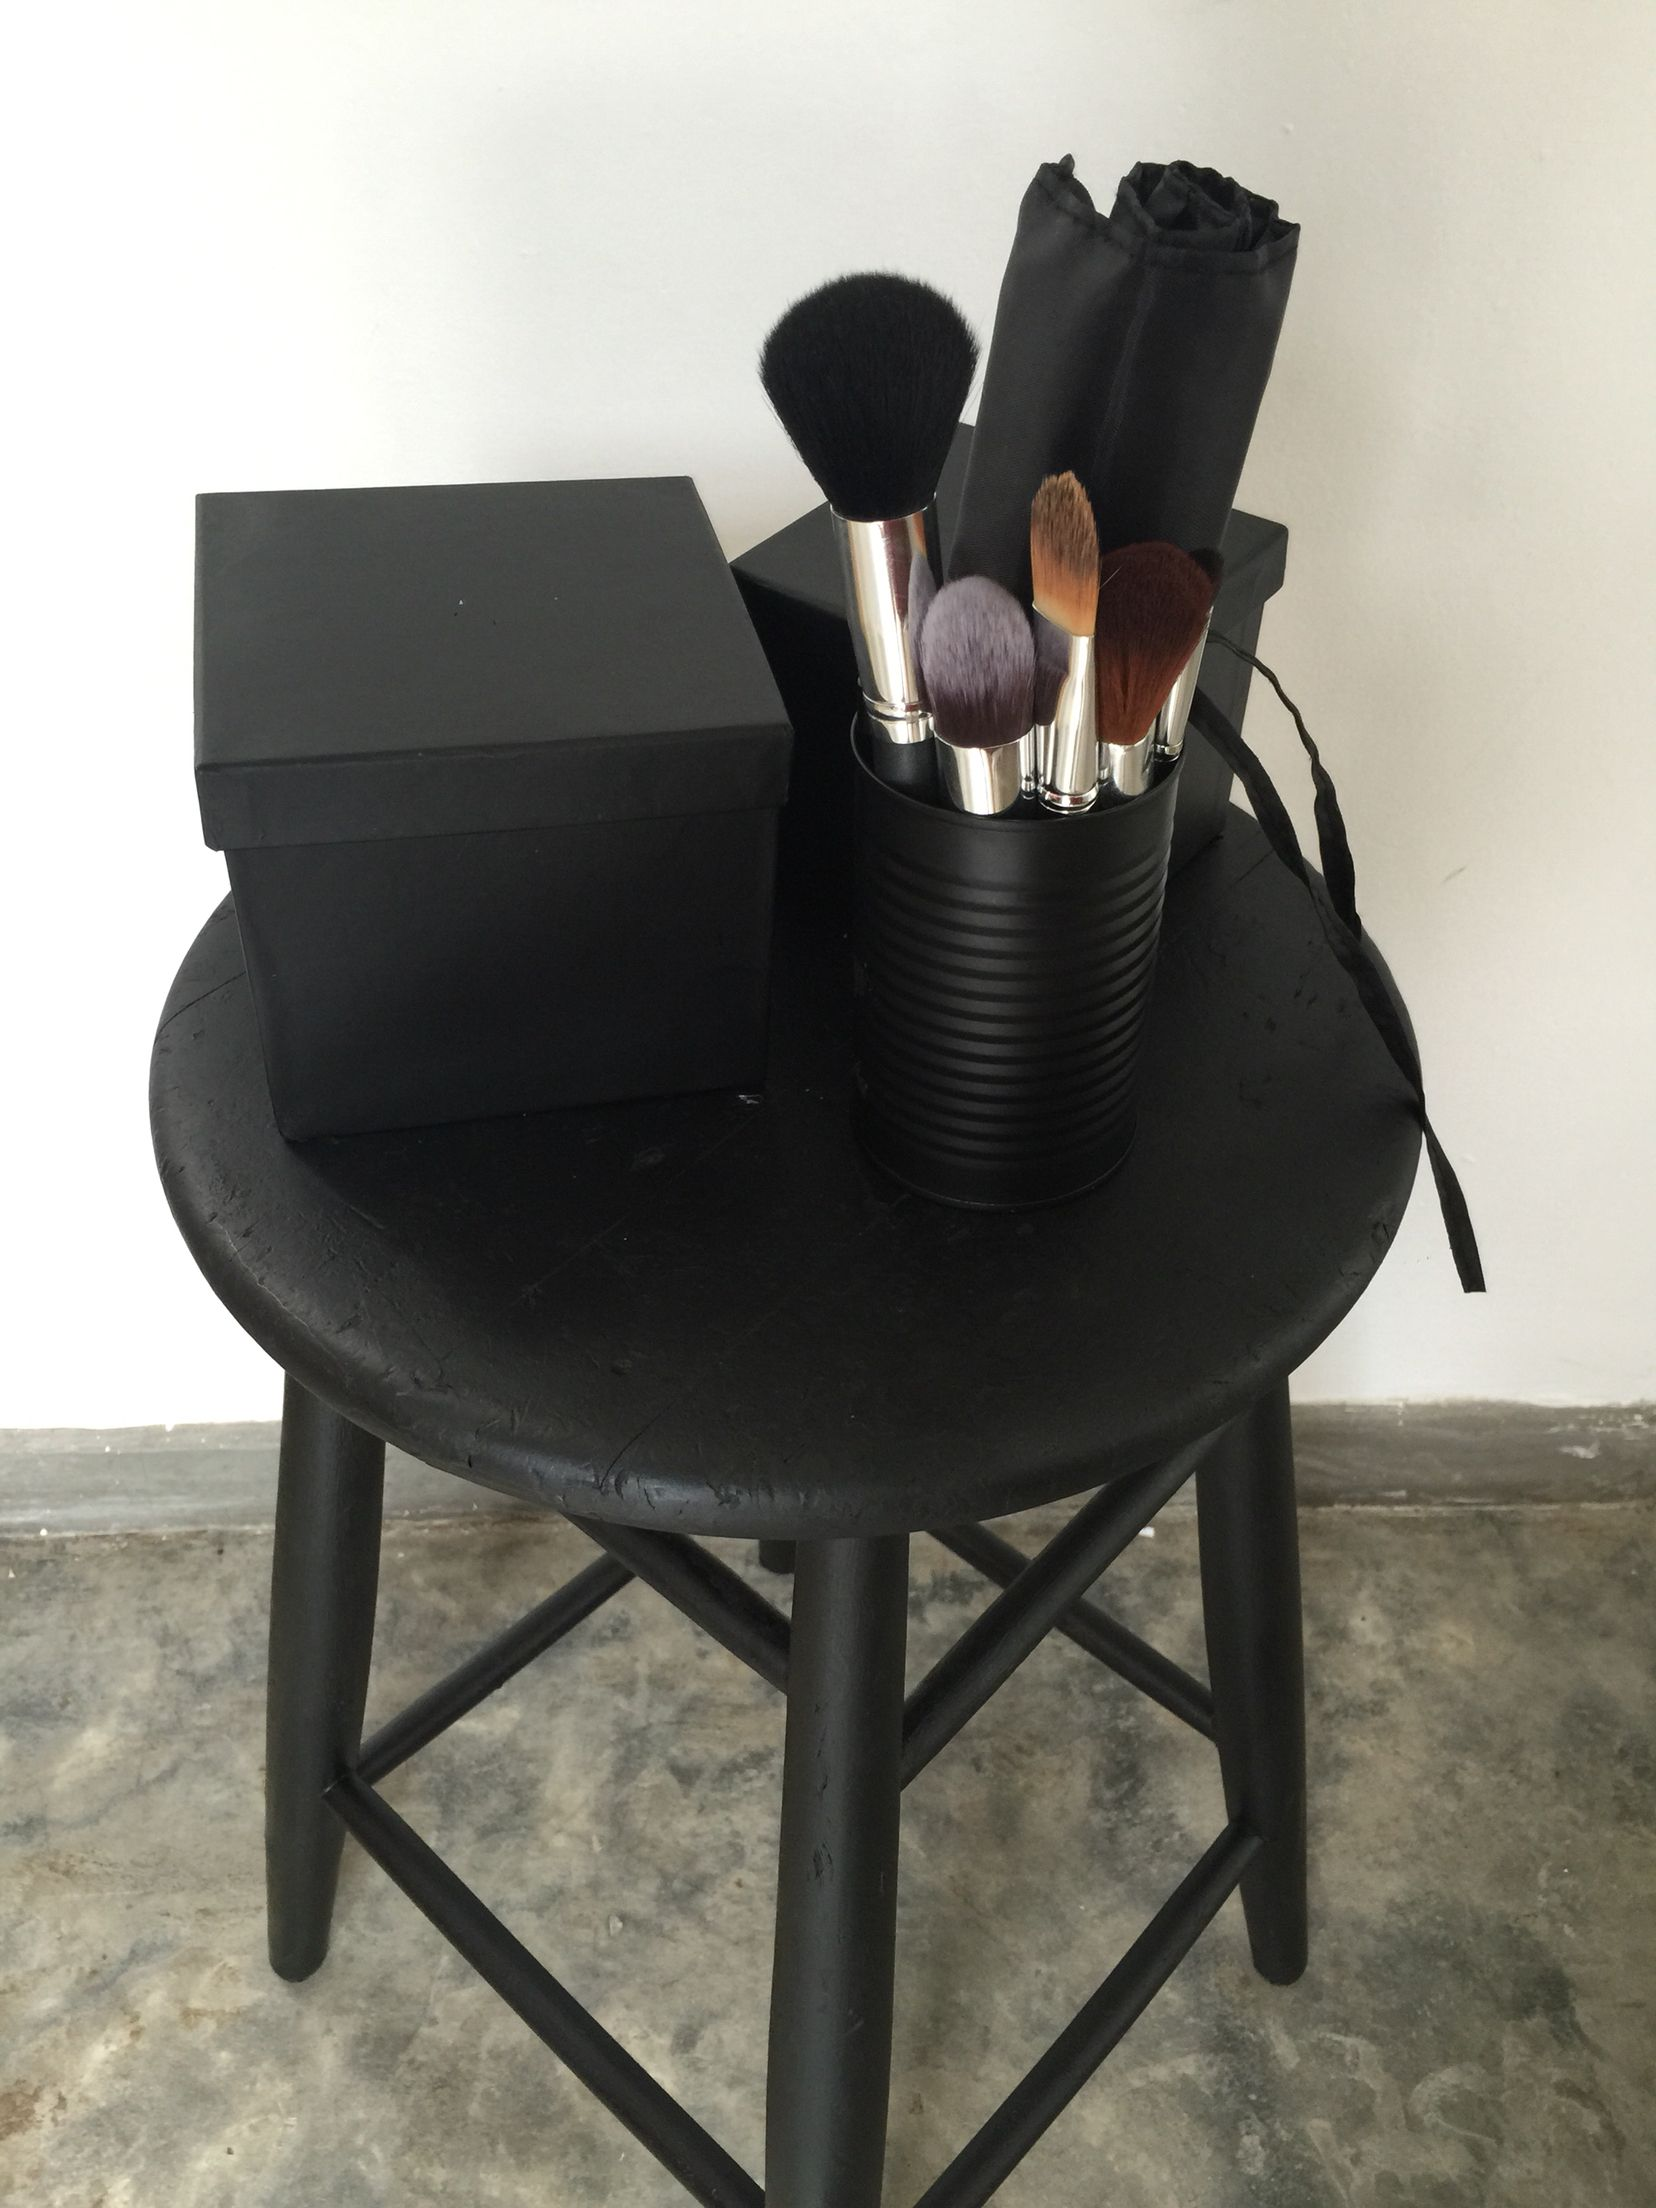 Diy Matte Black Spray Paint Cans Boxes And Stool Matte Black Spray Paint Spray Paint Cans Black Spray Paint